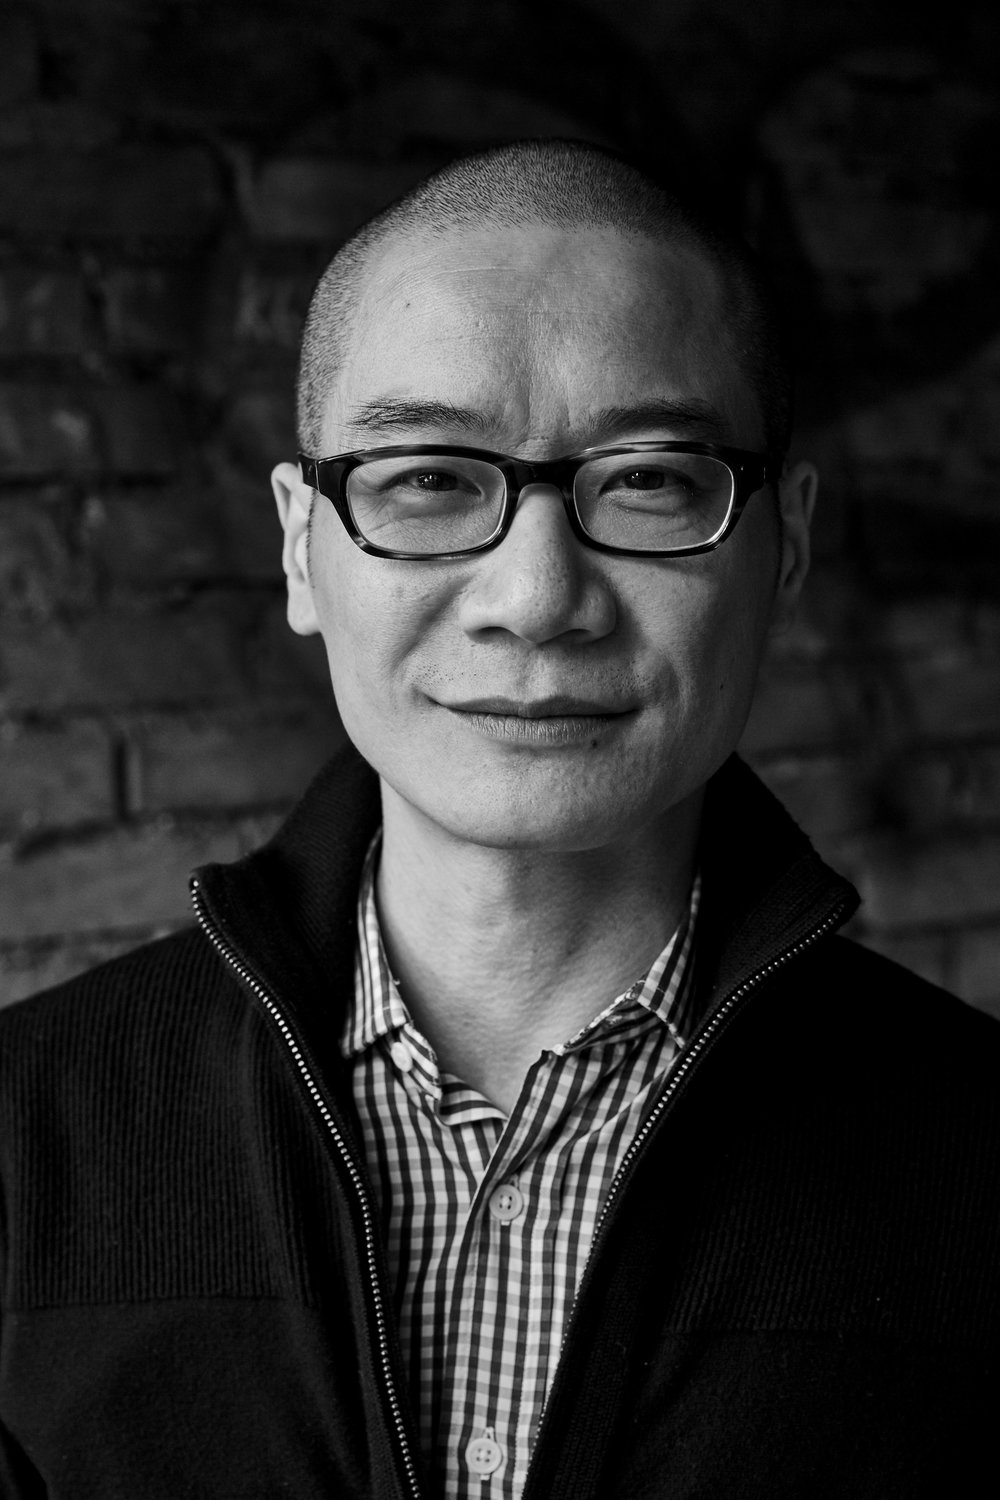 Peter_liem_author_portrait_199.jpg